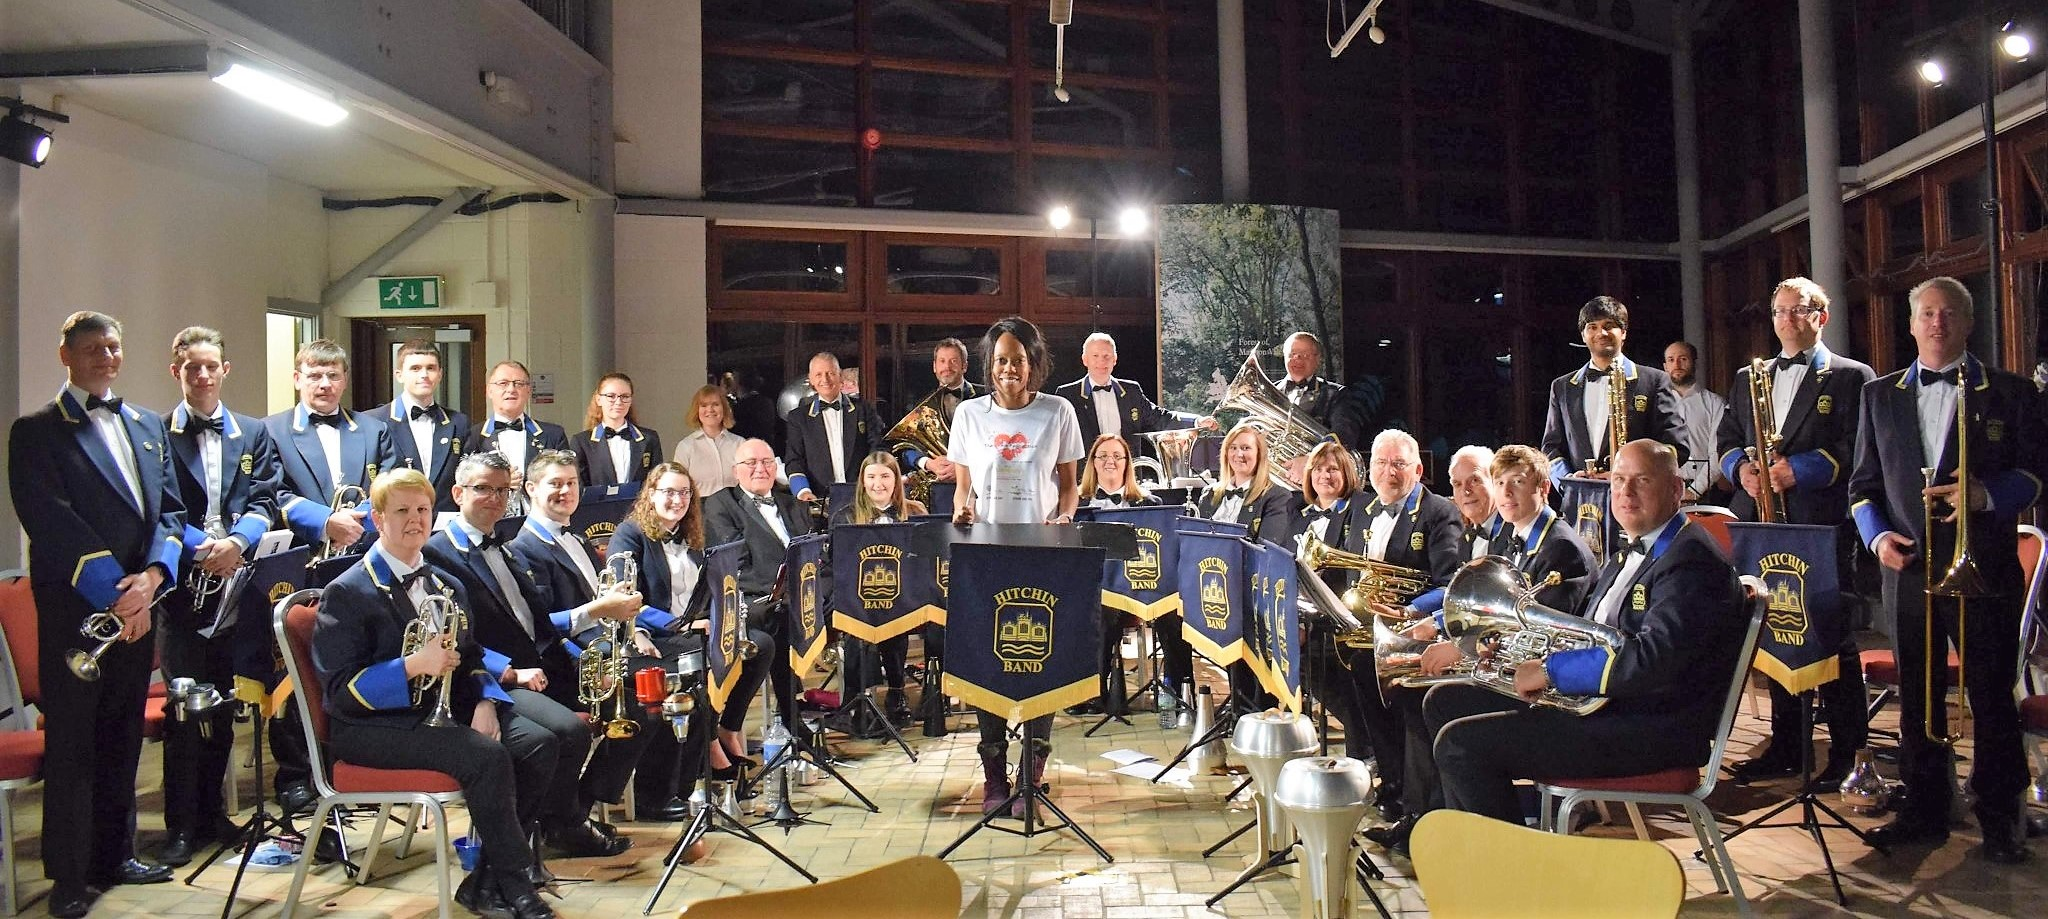 Forest Centre - Lewis Foundation Concert 2019